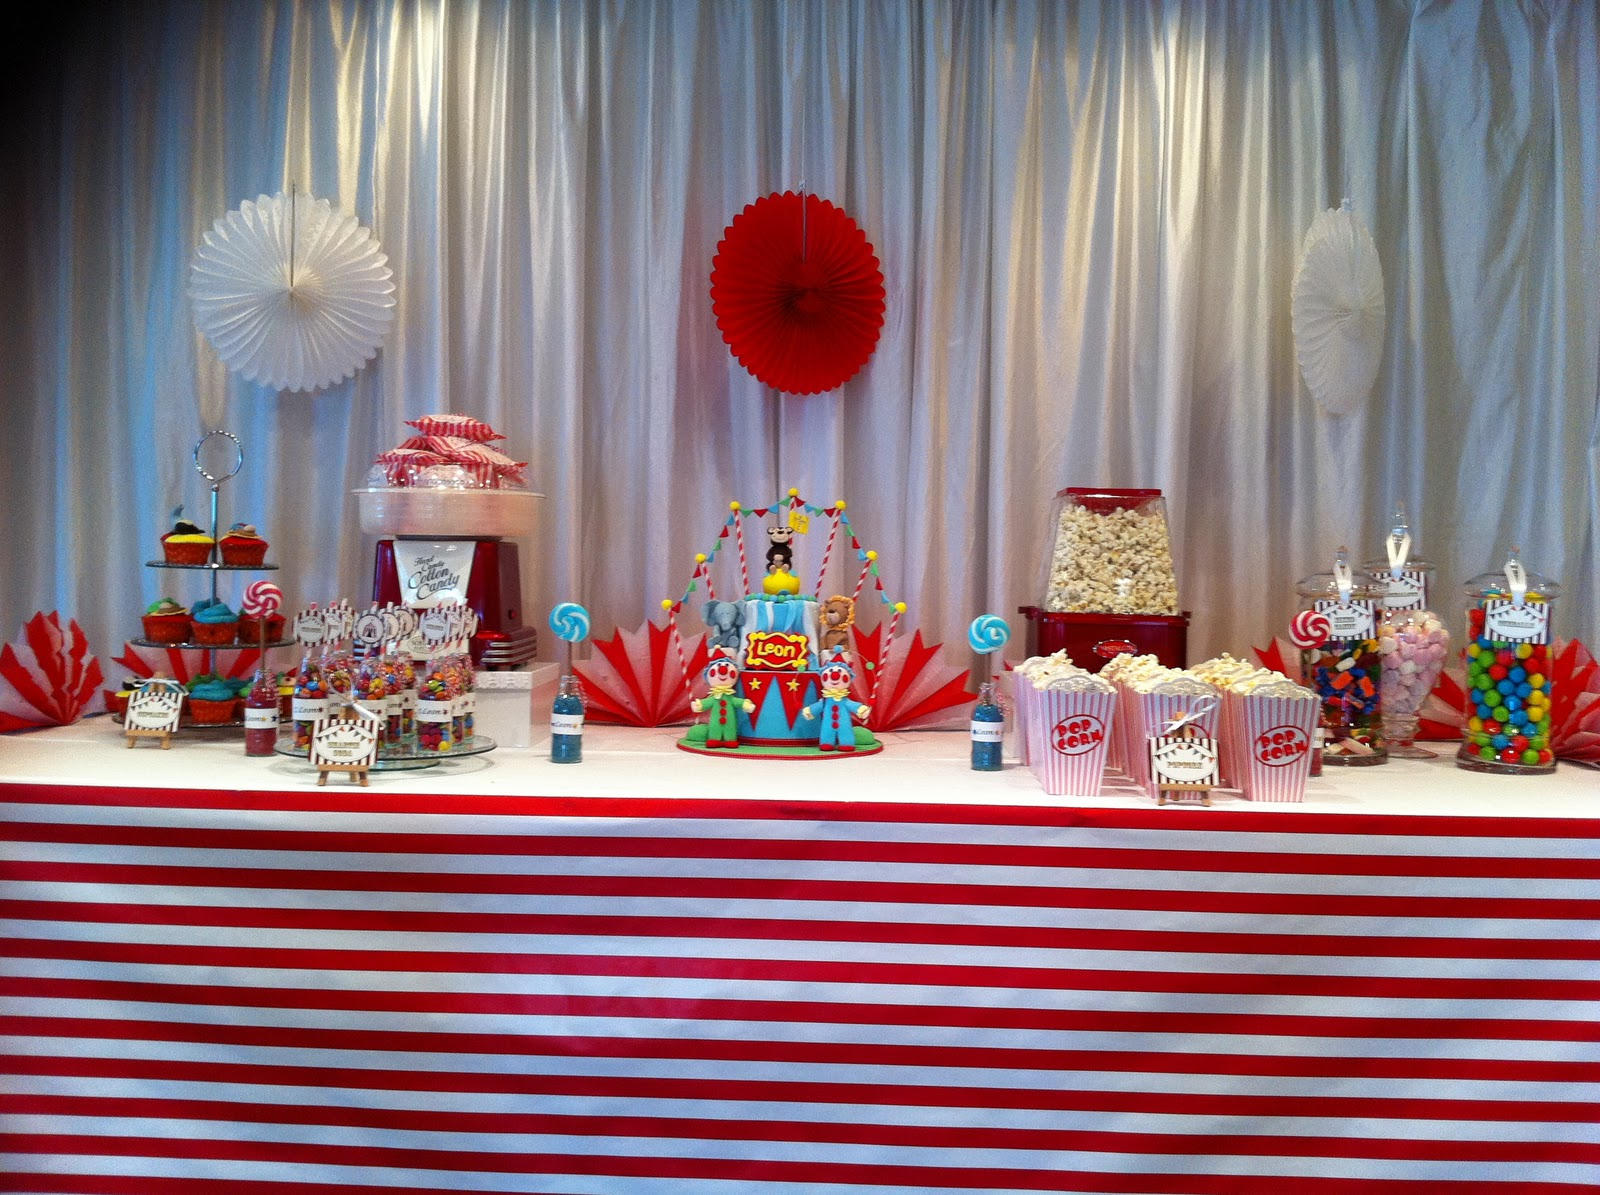 Events By Nat Leons Vintage Inspired Circus Themed Christening